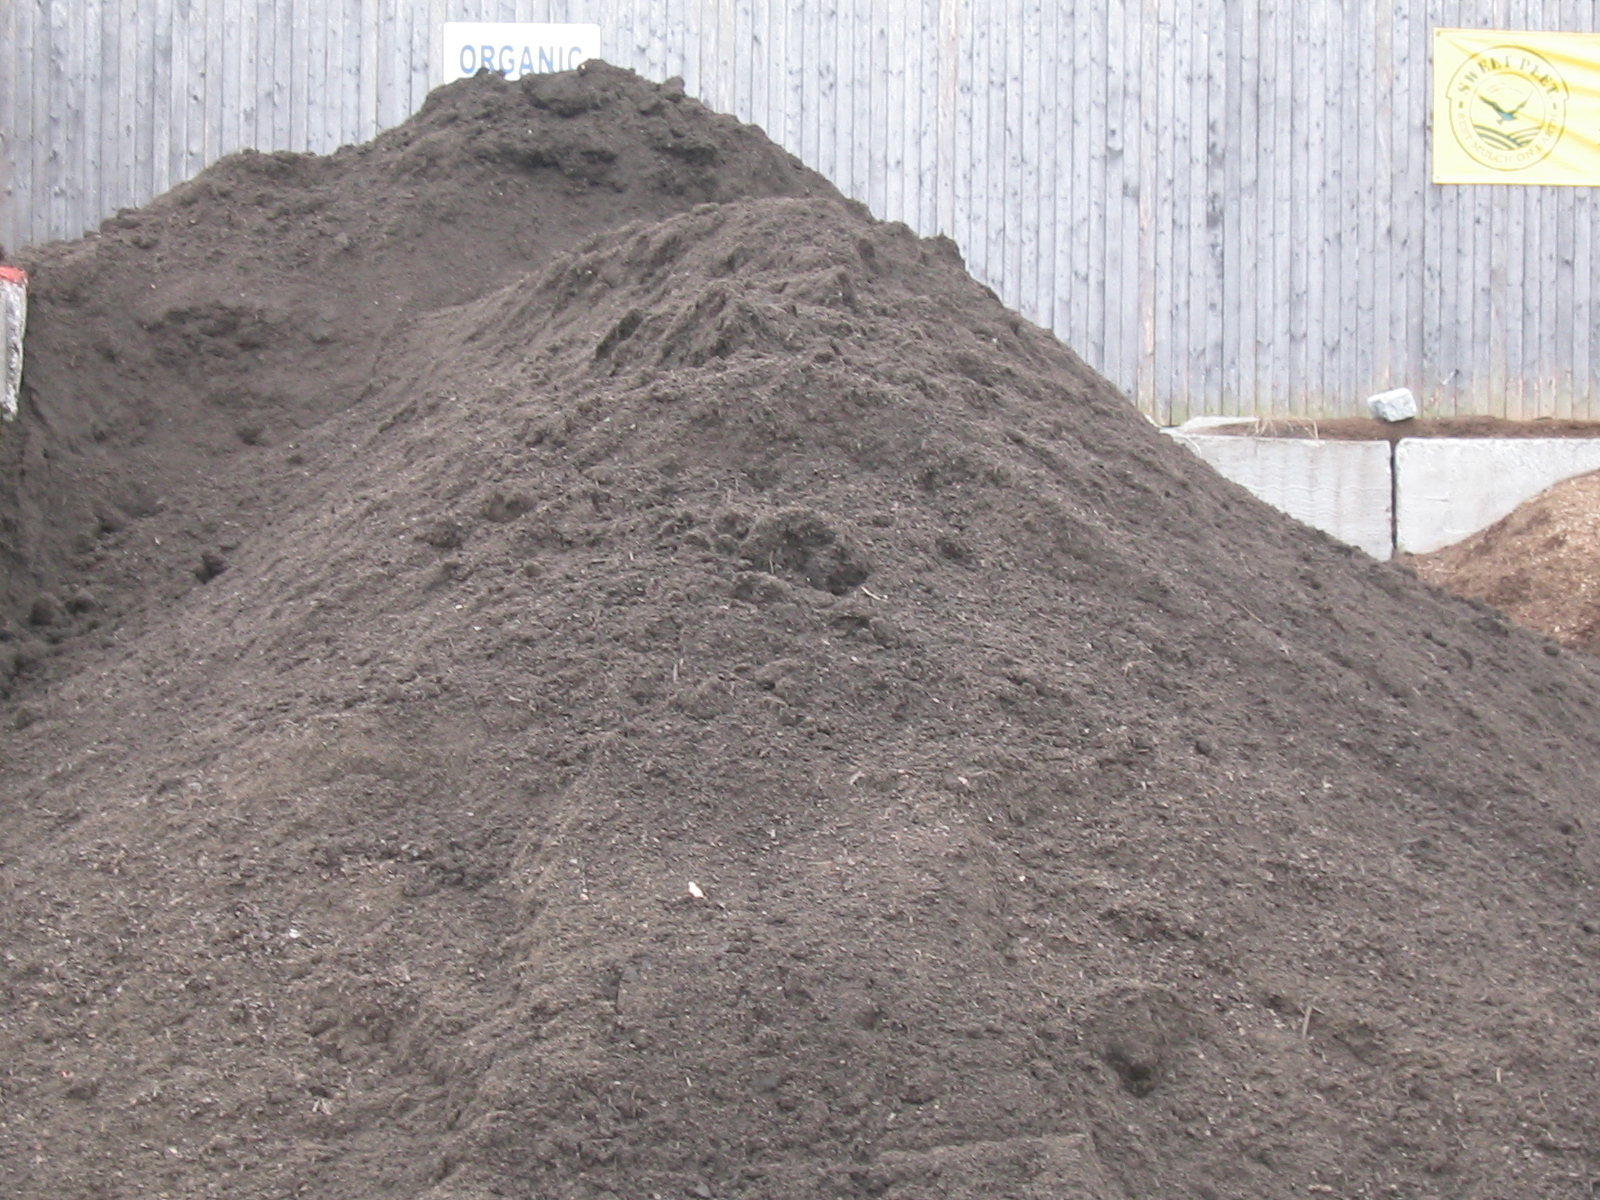 topsoil-fill-organic-WA-Sand-Supply-Transport